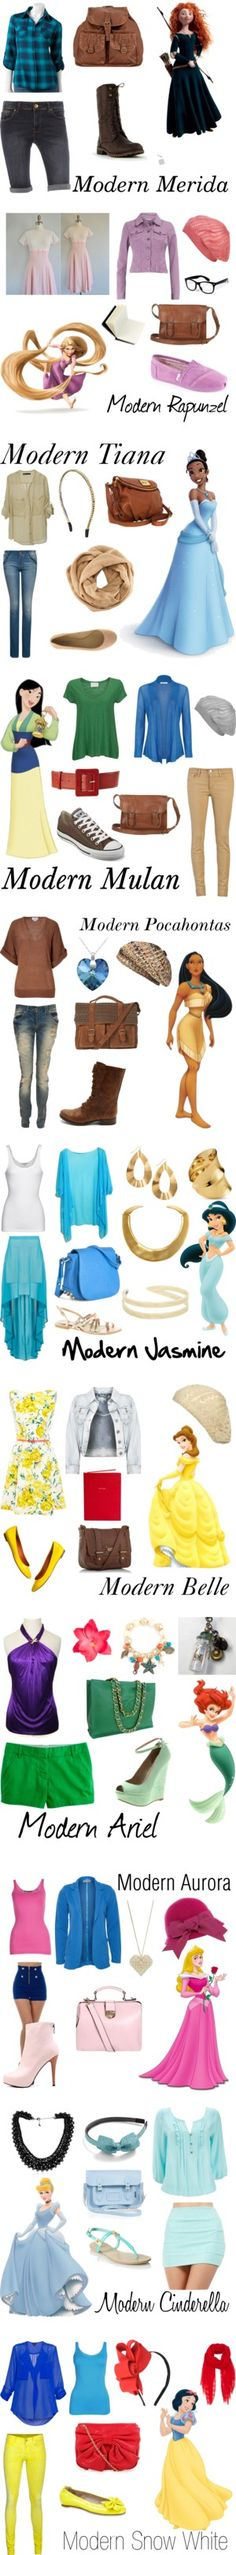 Modern Disney princesses - I like the looks for Merida, Tiana and Mulan the most. Disney Themed Outfits, Disney Bound Outfits, Princess Outfits, Disney Dresses, Princess Style, Princess Fashion, Modern Princess, Disney Clothes, Outfits Niños